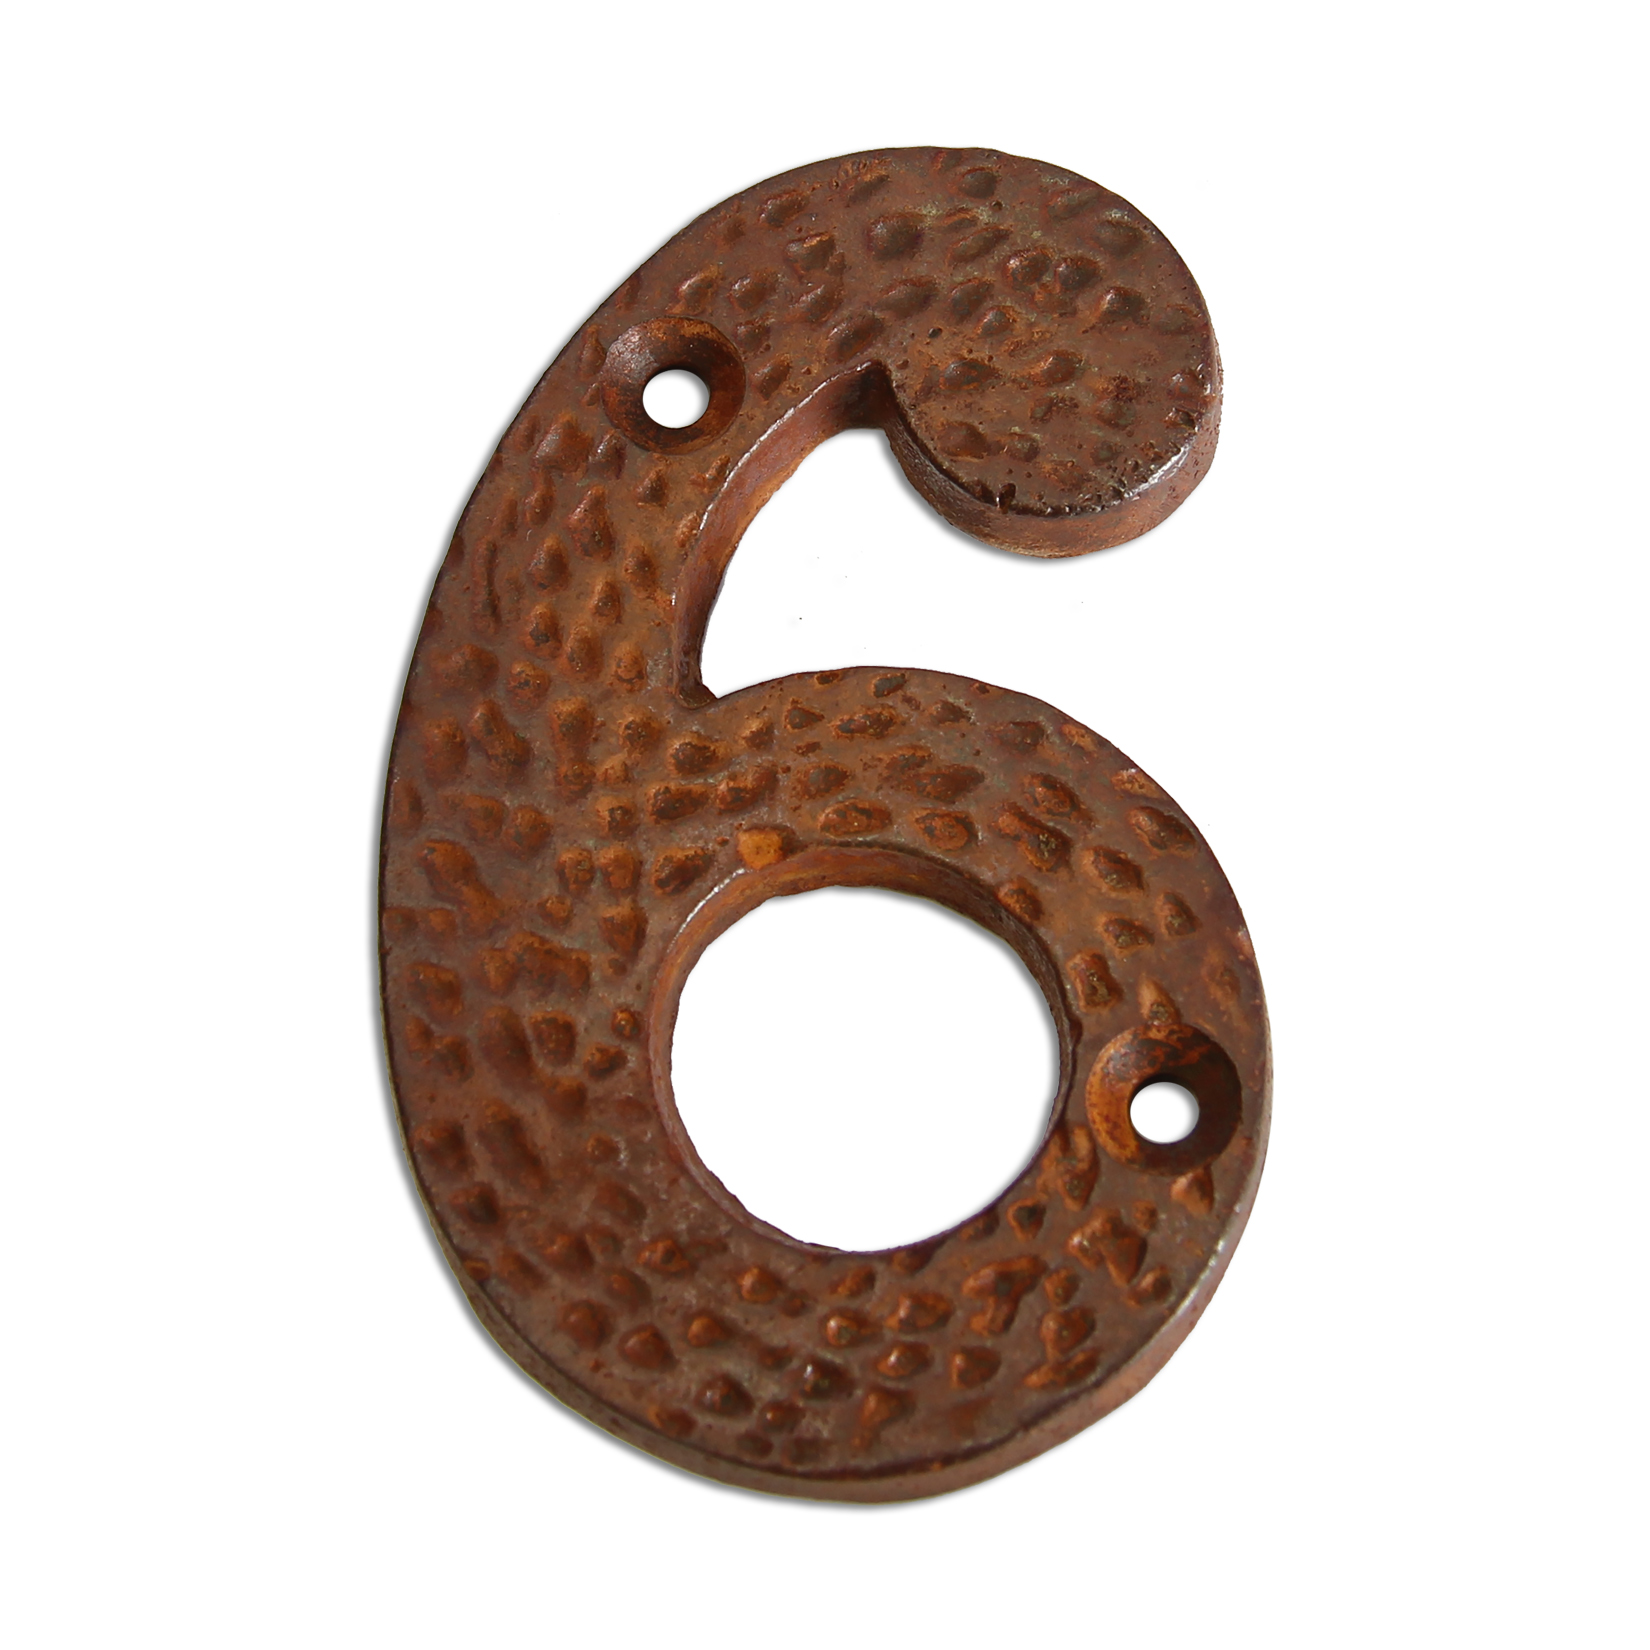 3-inch iron metal house number in rustic country finish - metal number 6